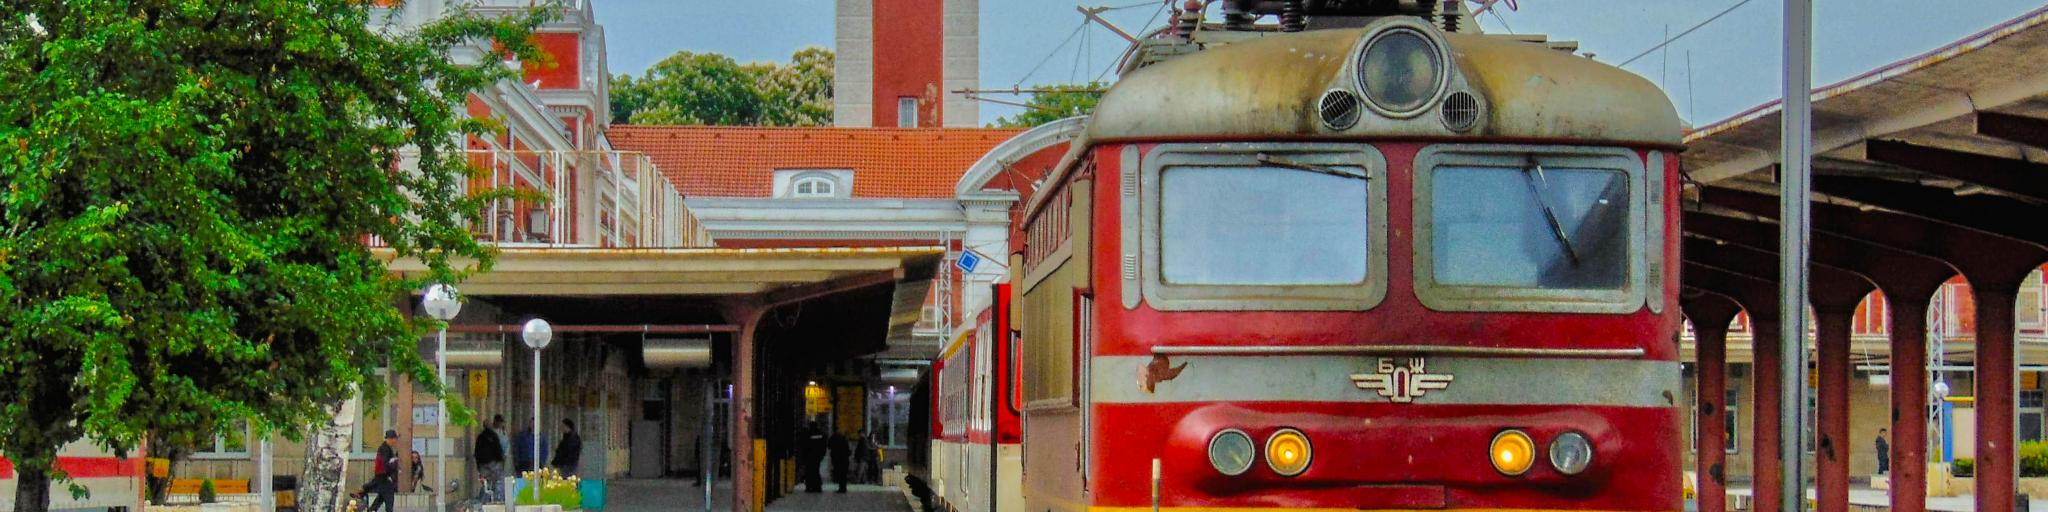 A red train parked at the station in Varna, Bulgaria